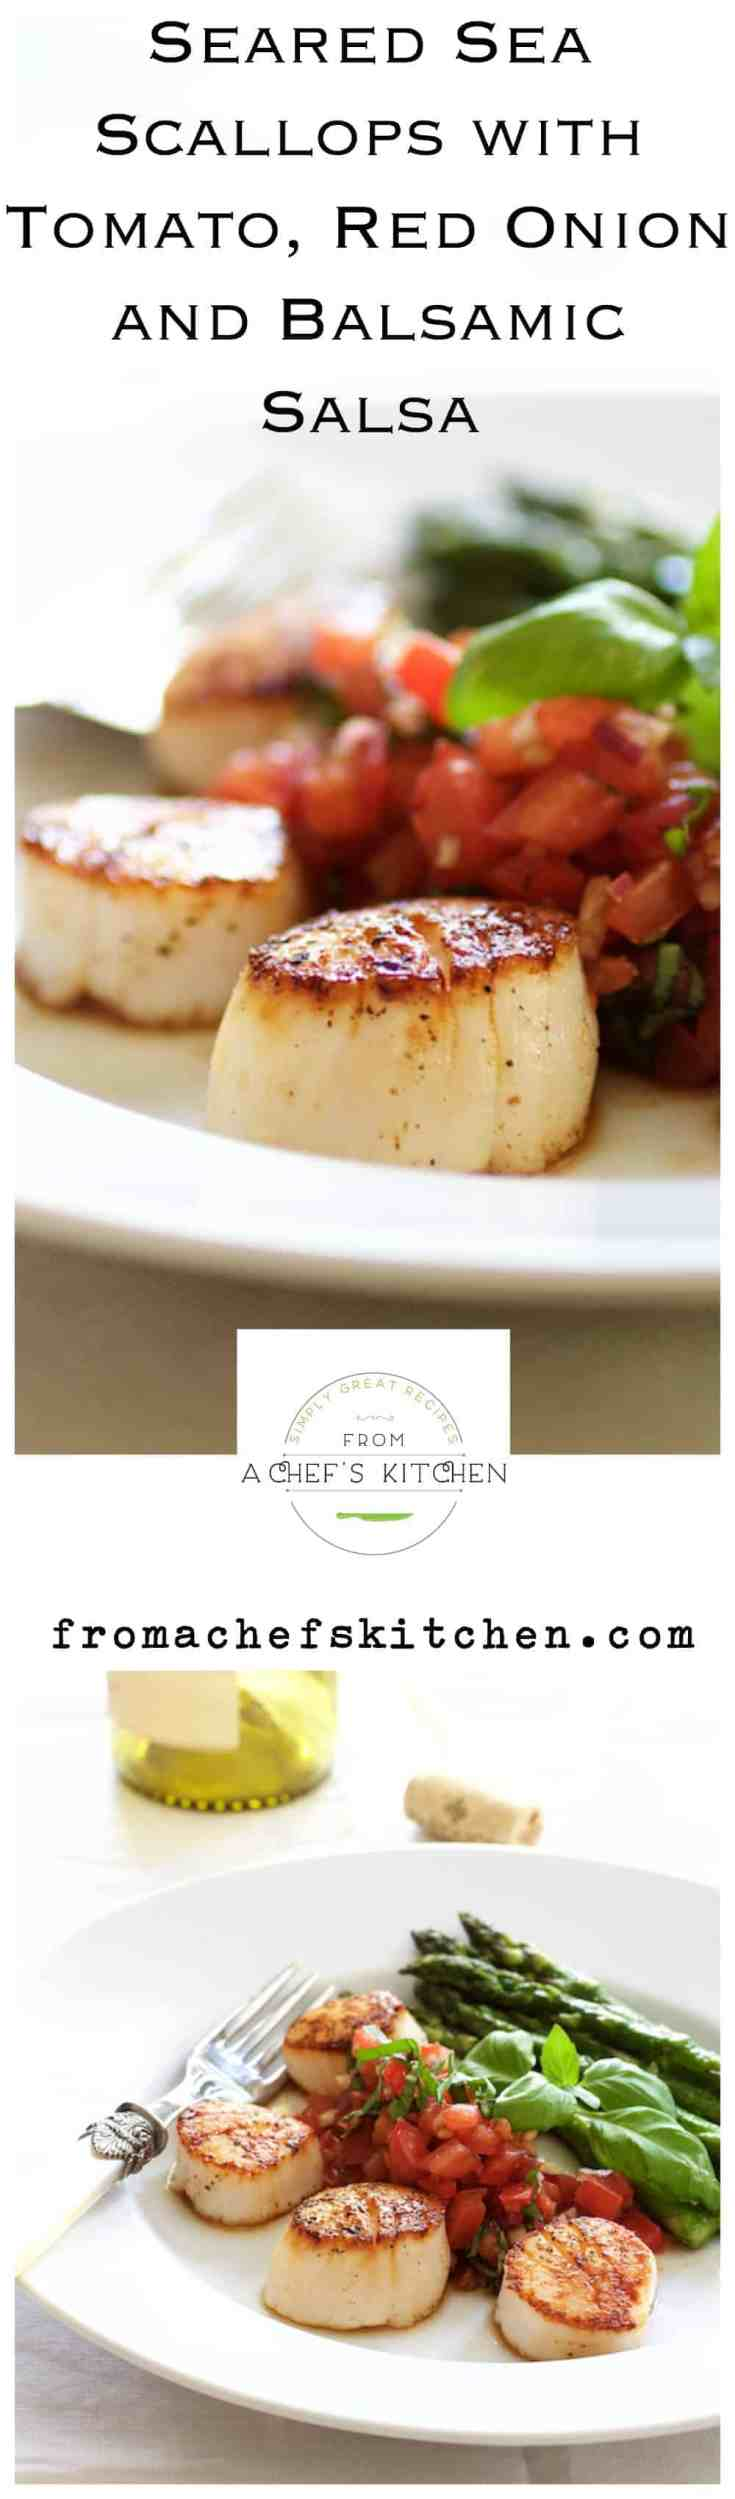 Seared Sea Scallops with Tomato, Red Onion and Balsamic Salsa is a light, elegant, summery restaurant-quality dish for two! #scallops #seascallops #tomato #tomatosalsa #seafood